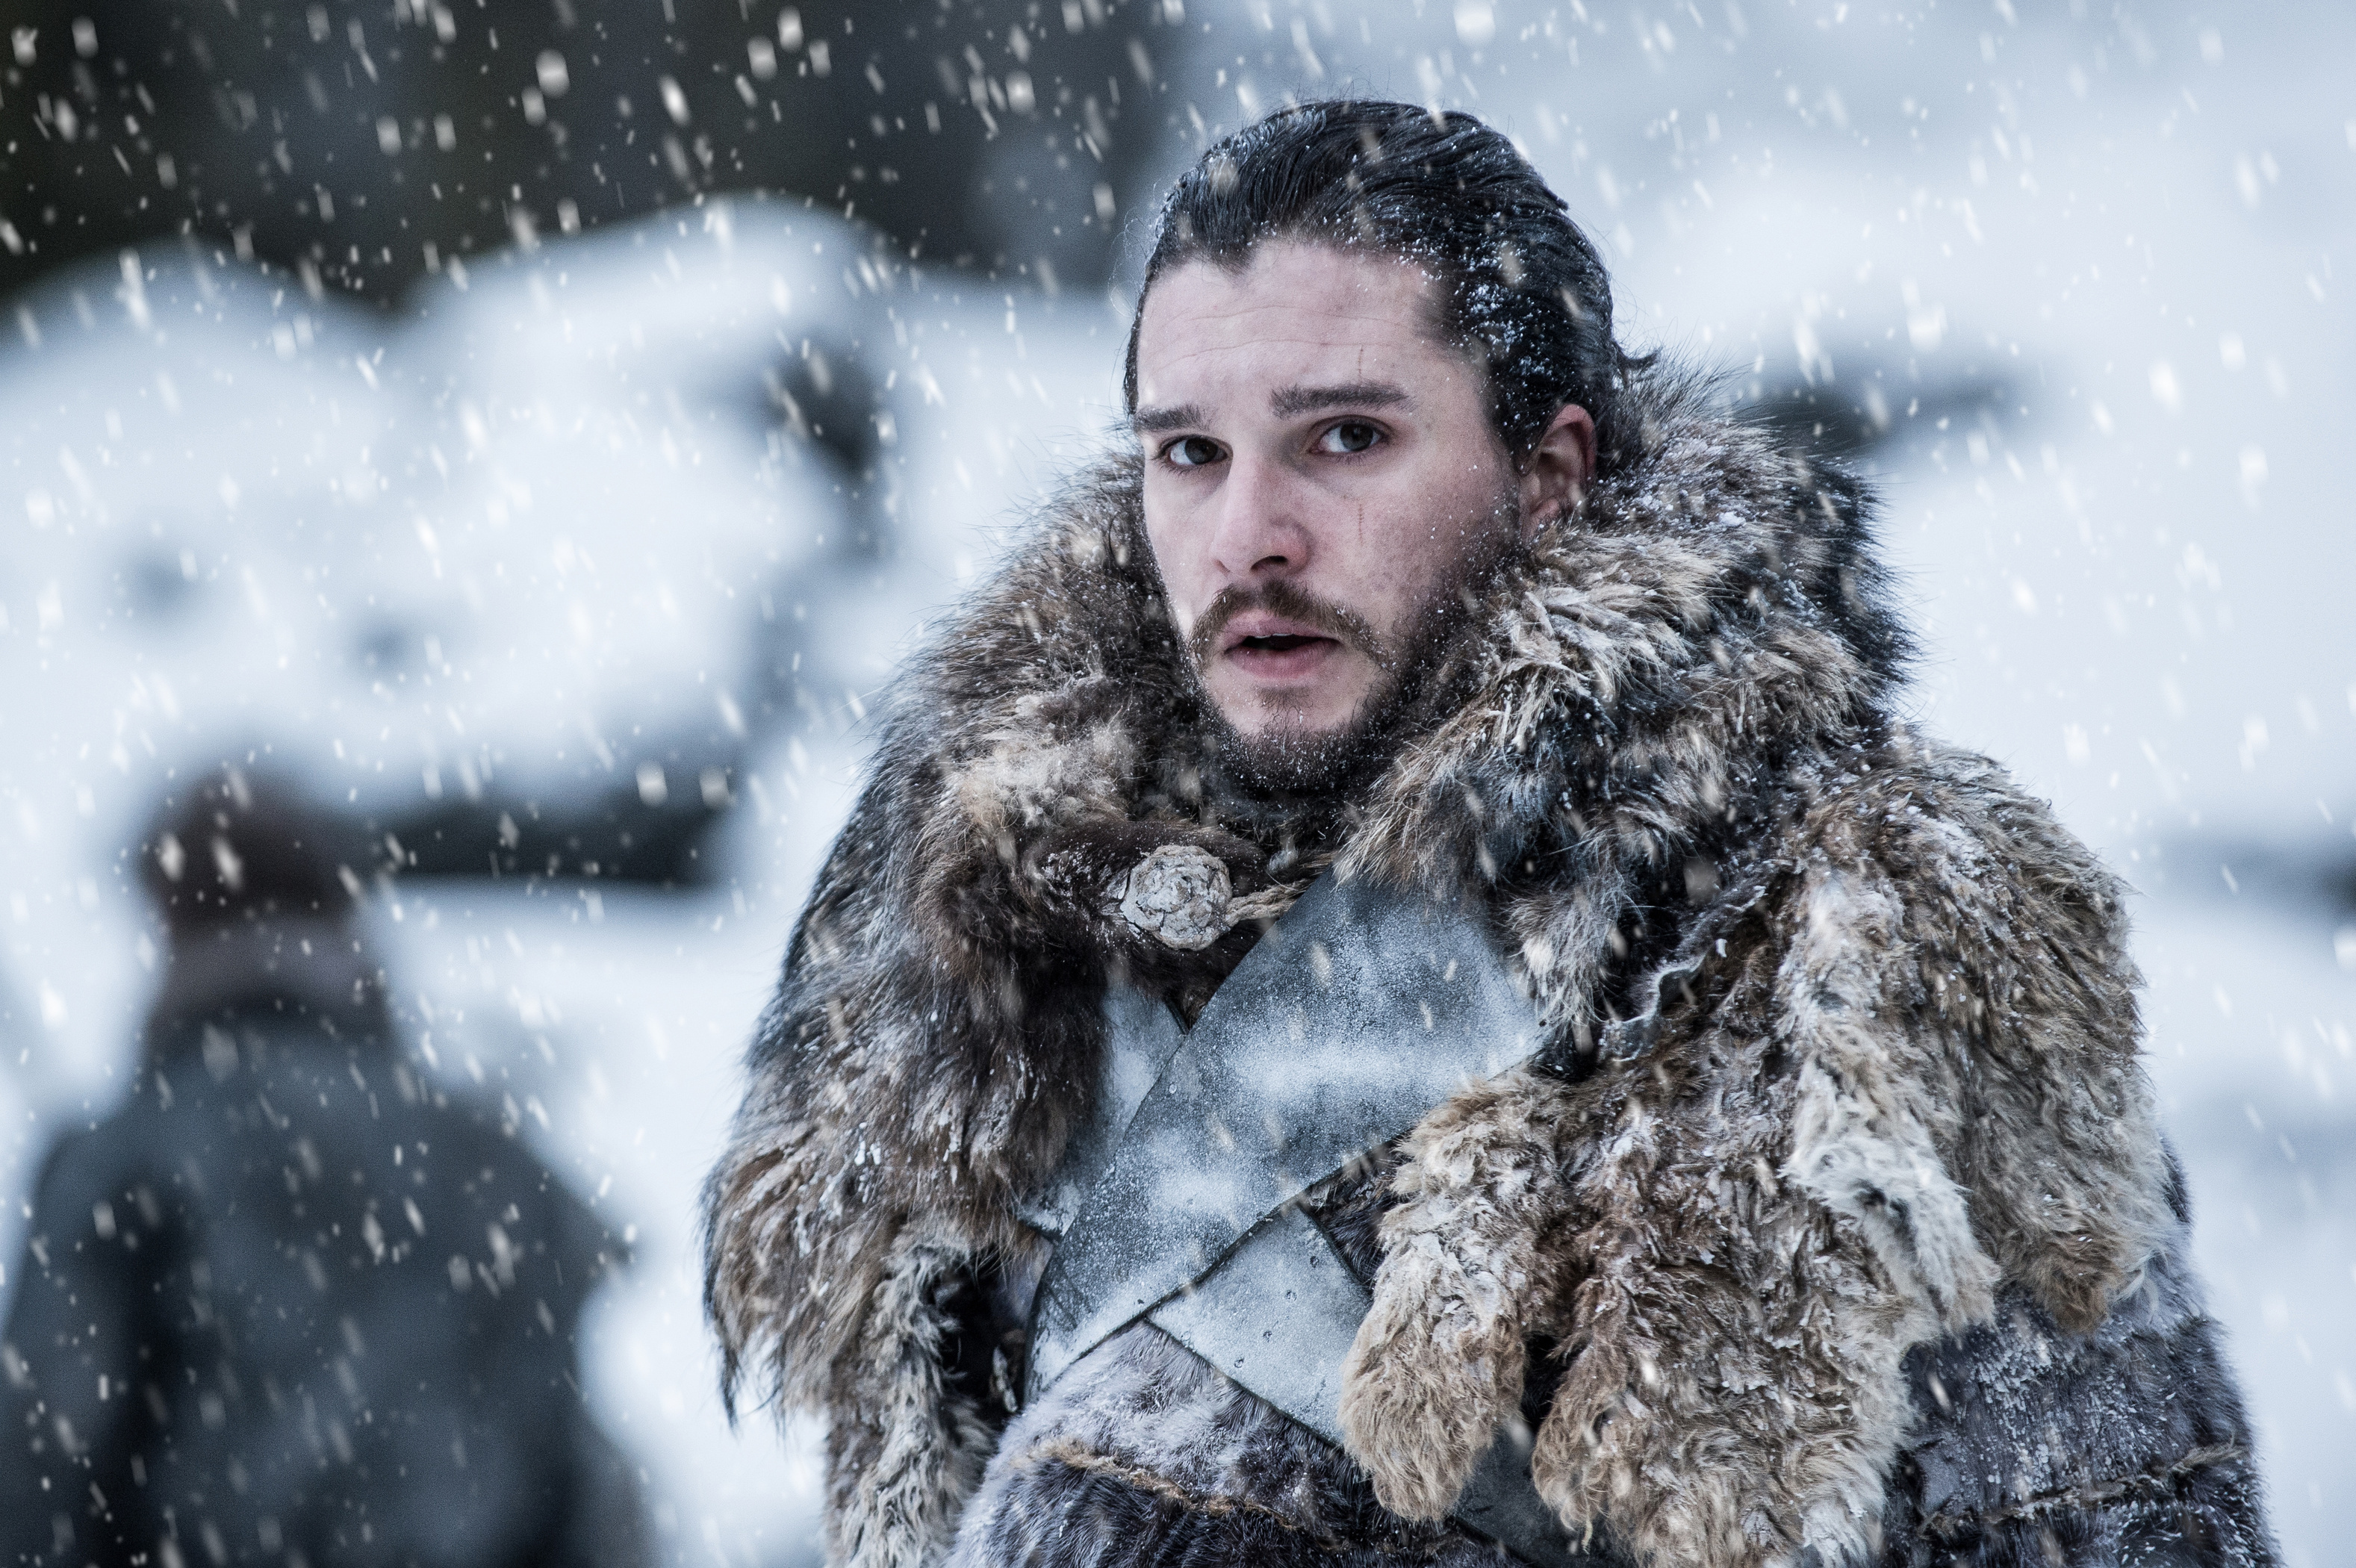 Game of Thrones season 8 will premiere in April